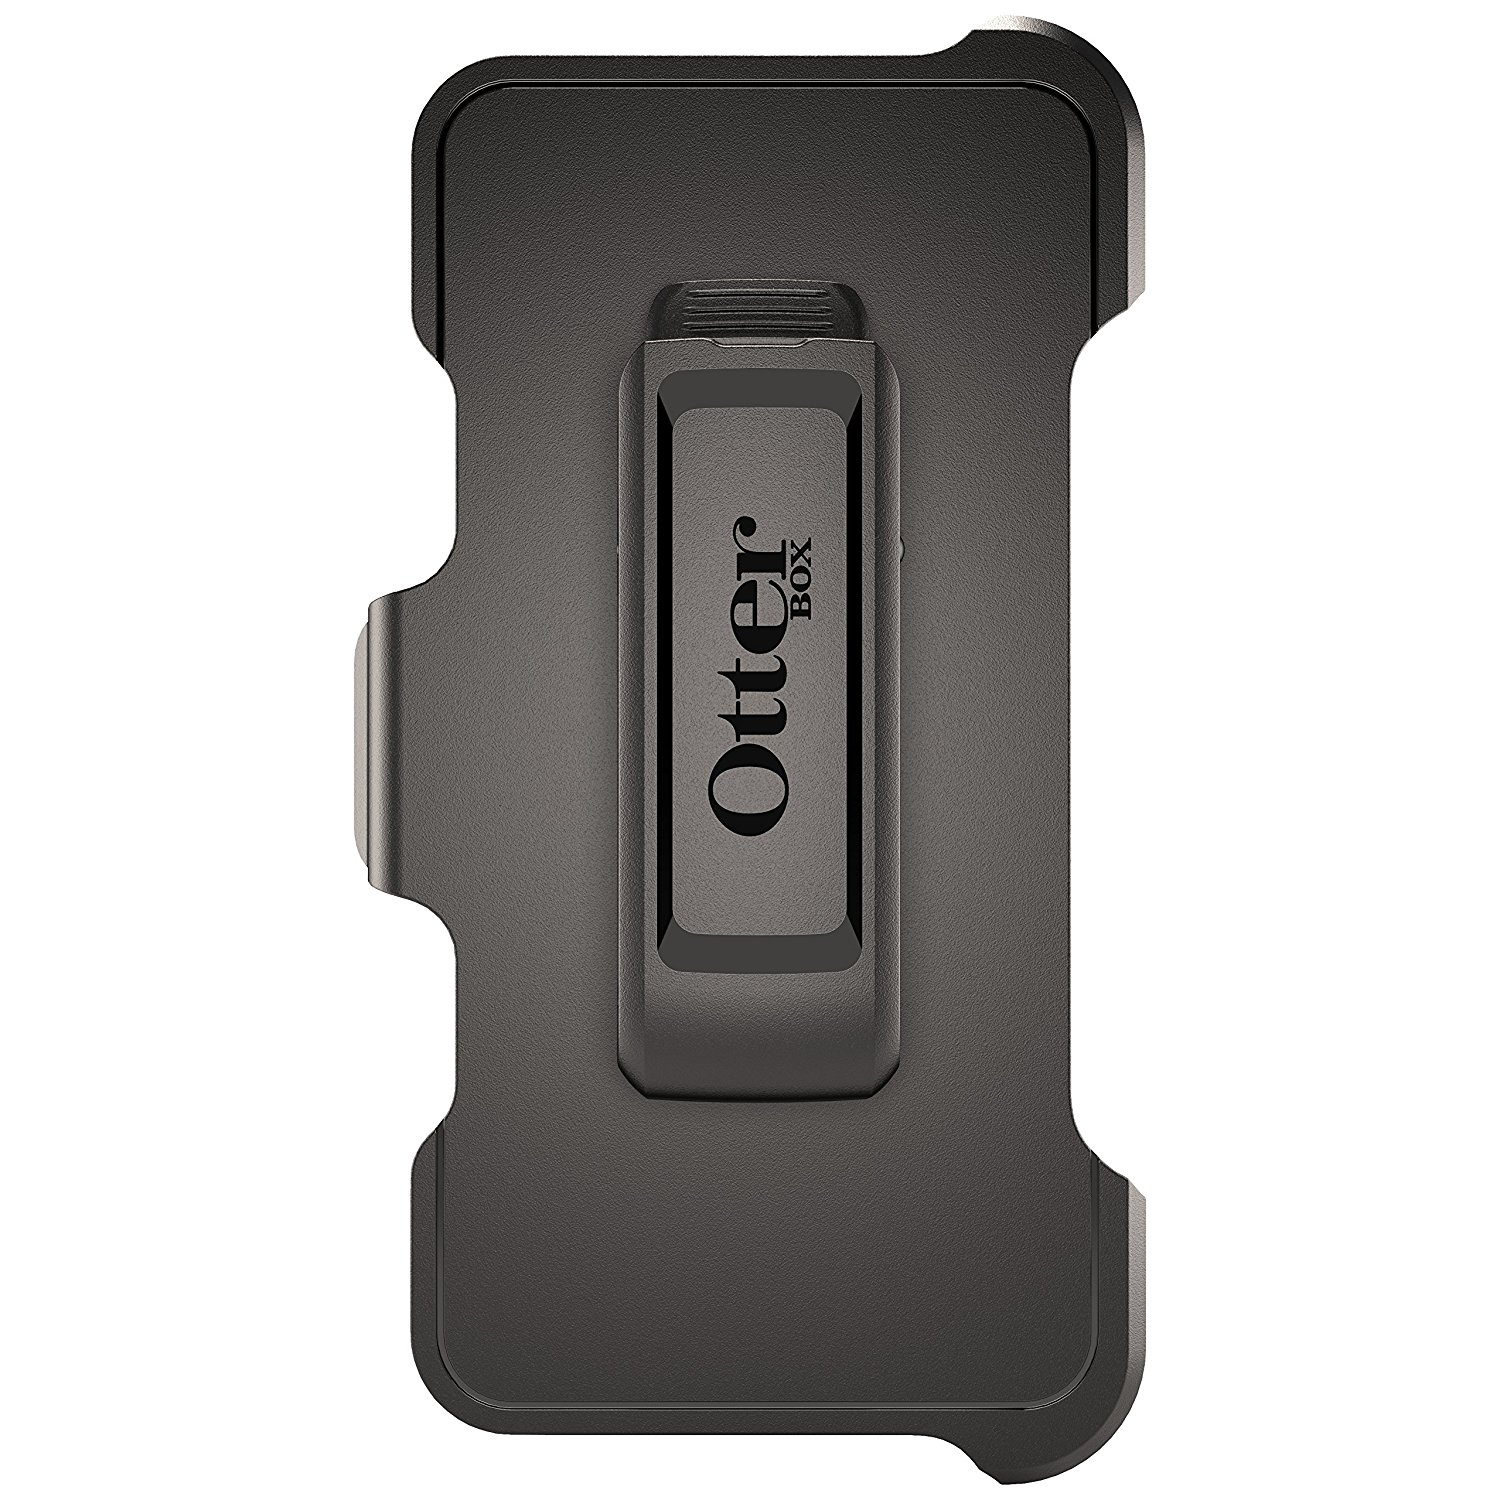 new style 7c164 3377e Details about OtterBox Defender Series Belt Clip Holster Replacement -  Apple iPhone 6 6s-Black